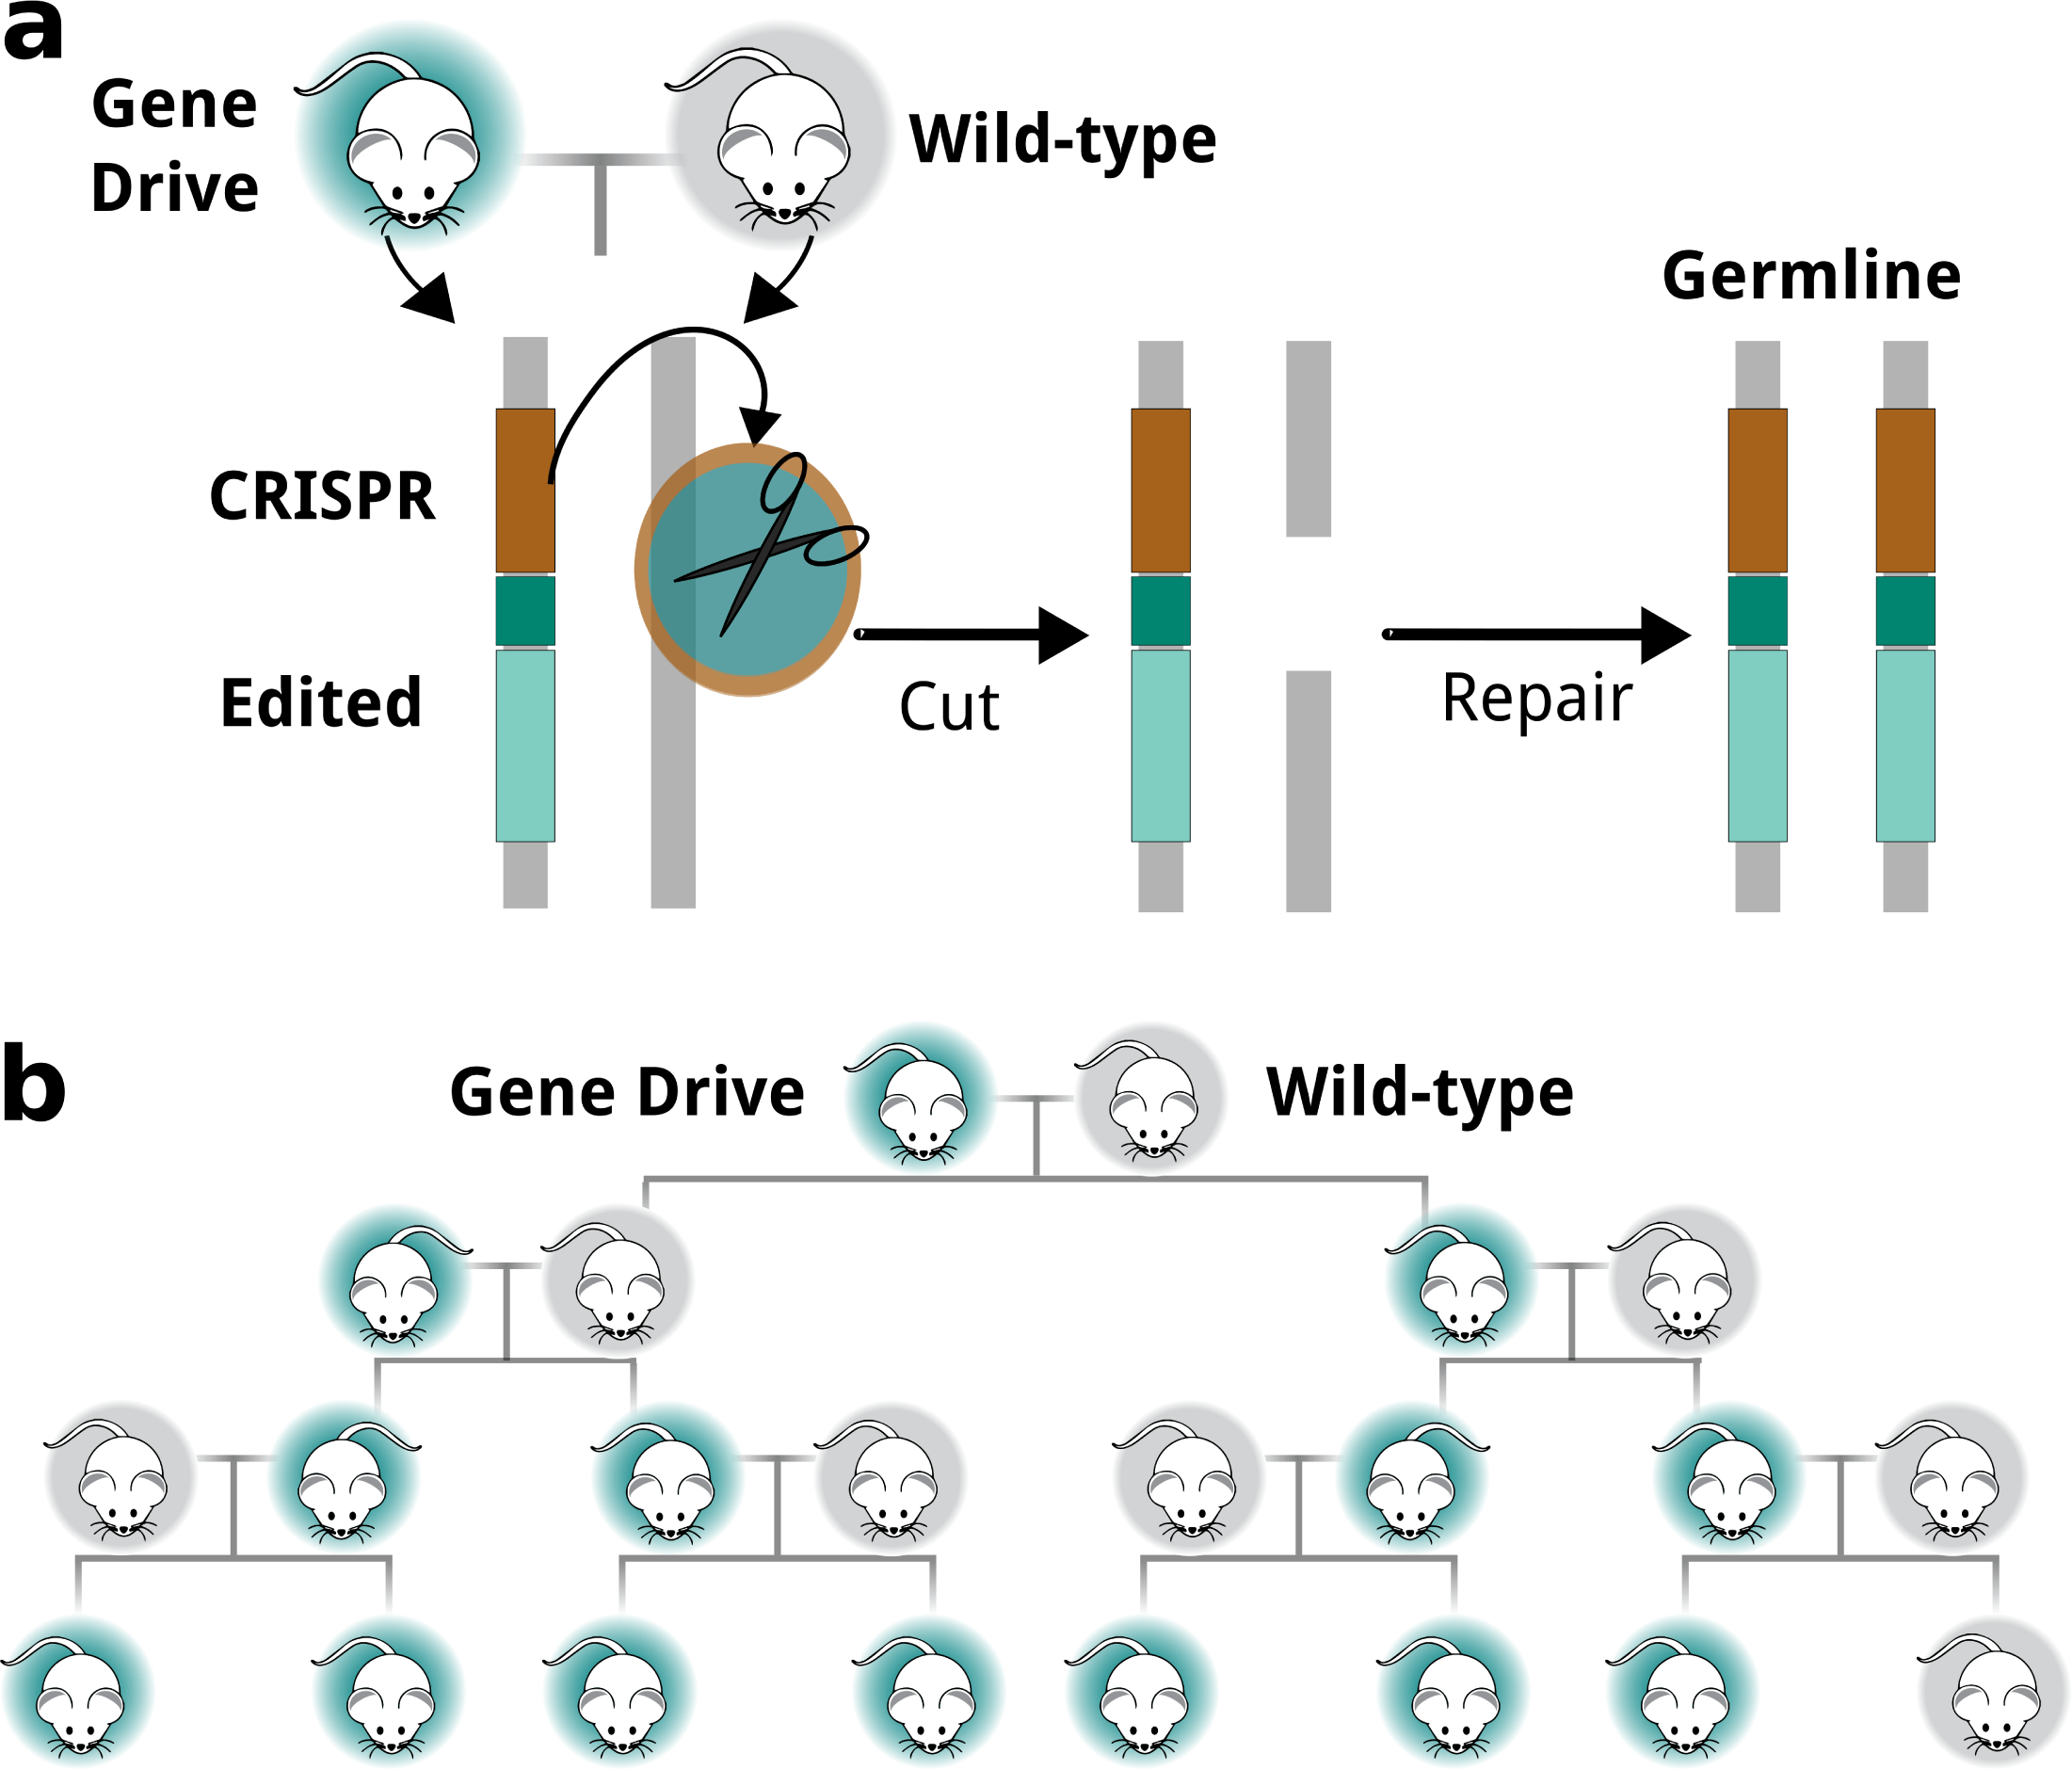 Chromosome In A Sentence Viewpoint Why Using Gene Drives To Eradicate Pests Might